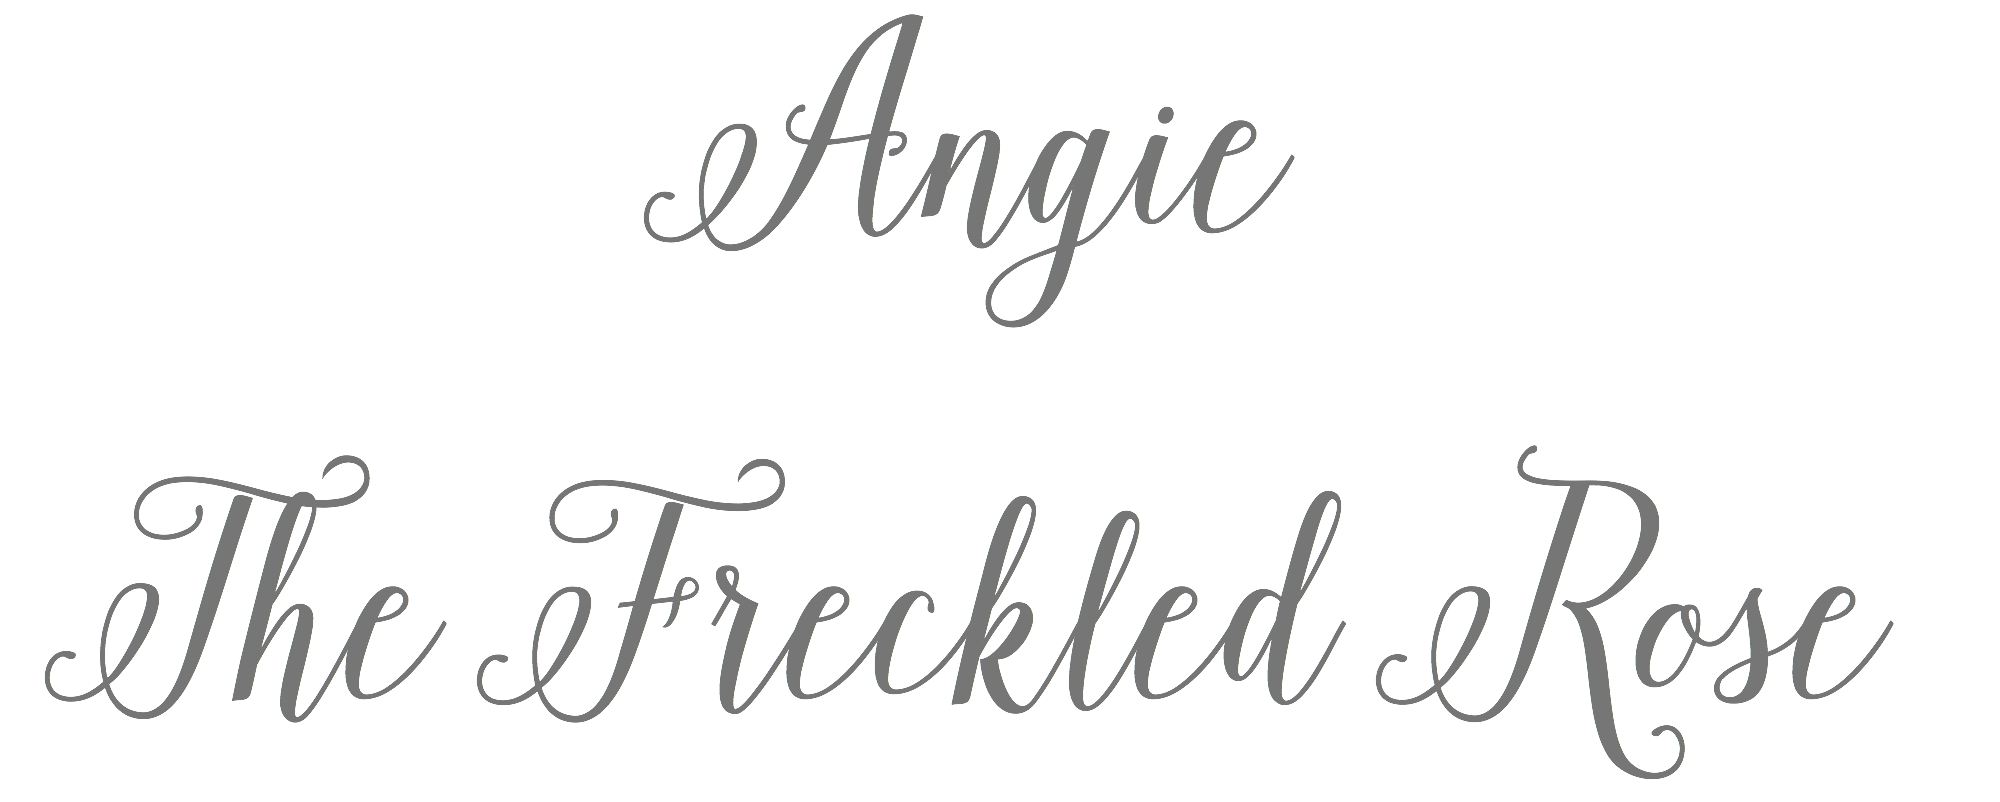 Angie The Freckled Rose | angiethefreckeldrose.com